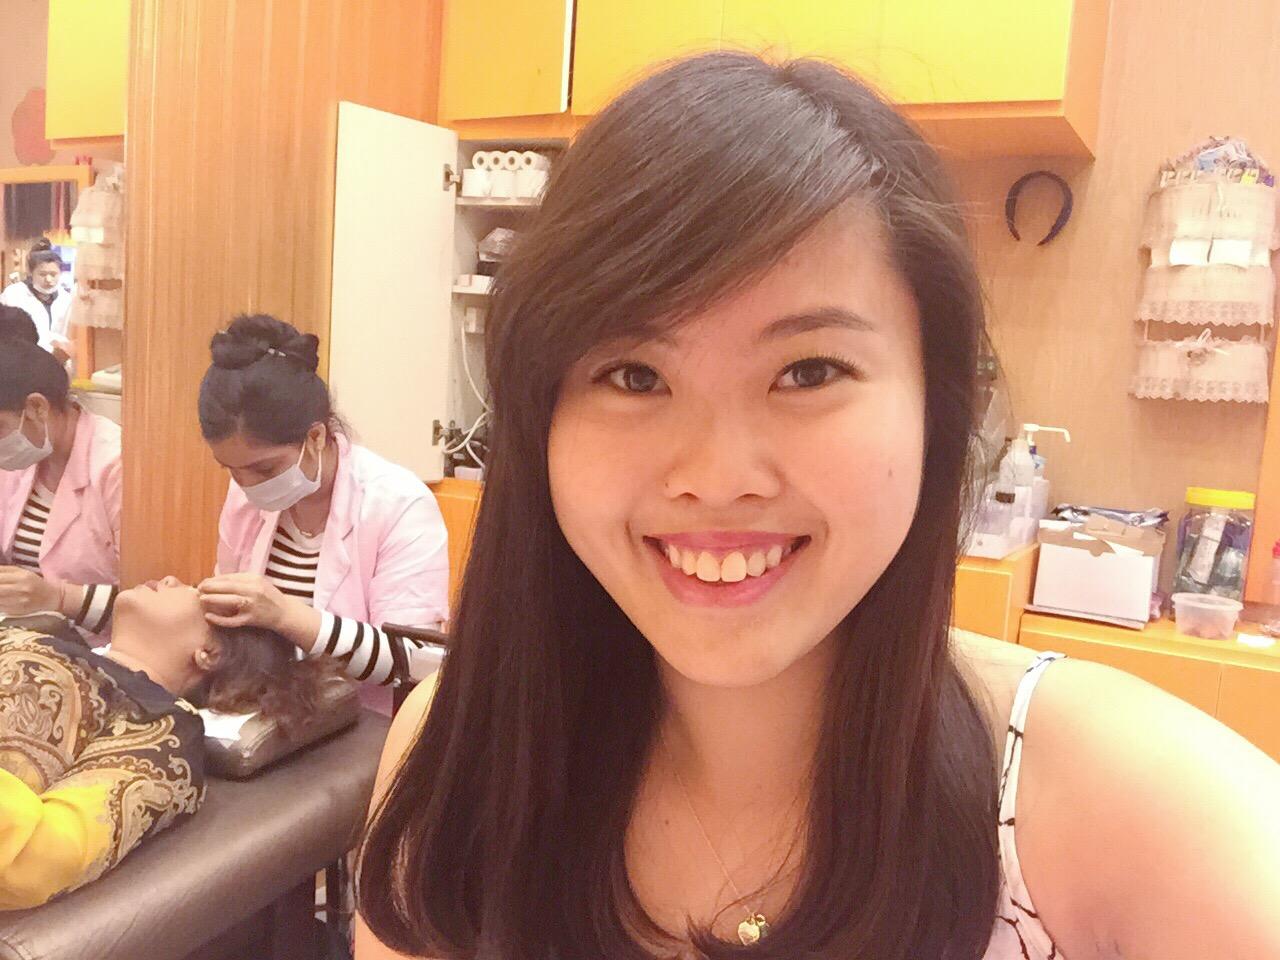 Eyelash extensions at vain beauty singapore cforcassan food of extensions i would recommend you to show her the first image of the cluster extensions so shell know which ones you are referring to because the pmusecretfo Gallery